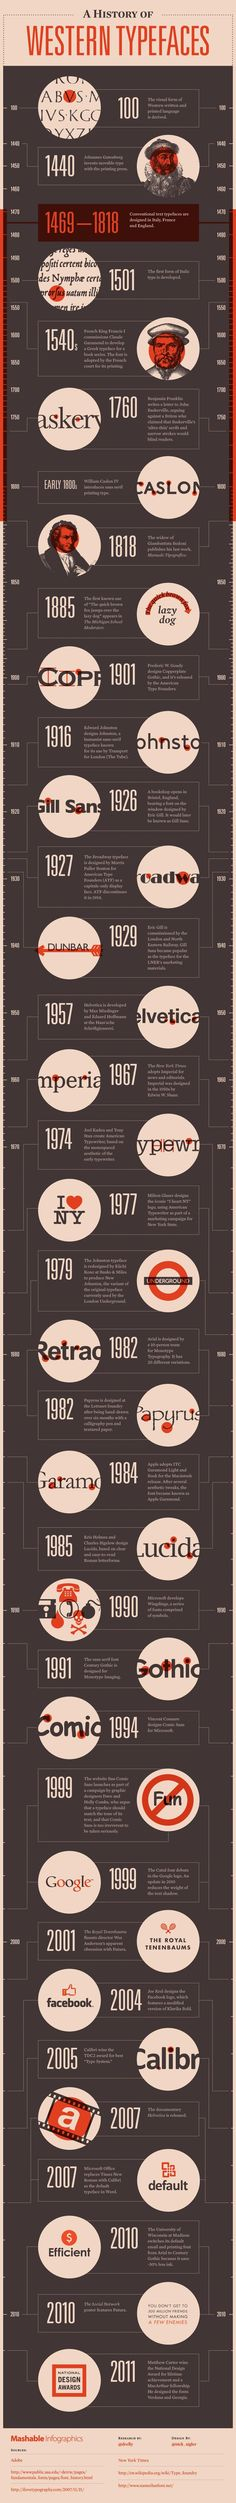 Ok, this is so awesome that it belongs on multiple boards. Its that awesome, an Infographic on the history of Type Faces/Fonts!!! YOWZAH!